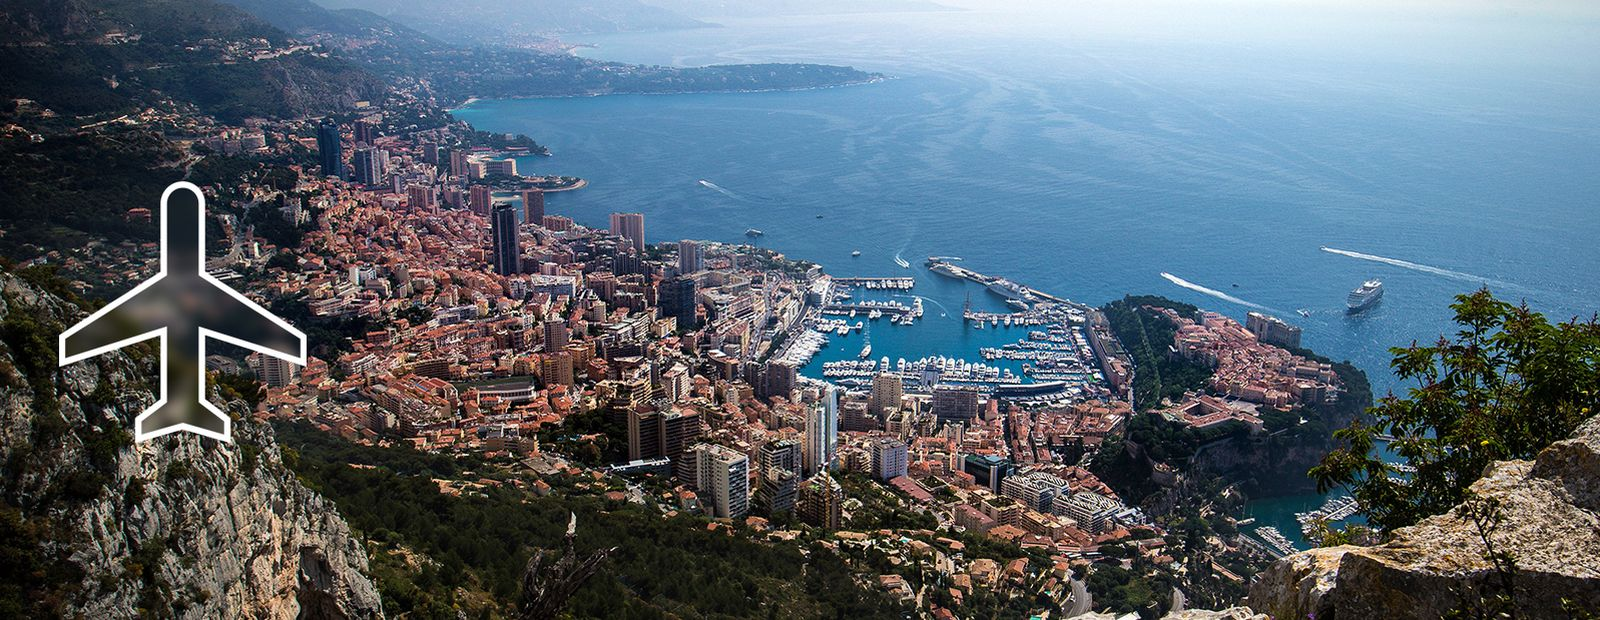 Monaco GP Travel Guide